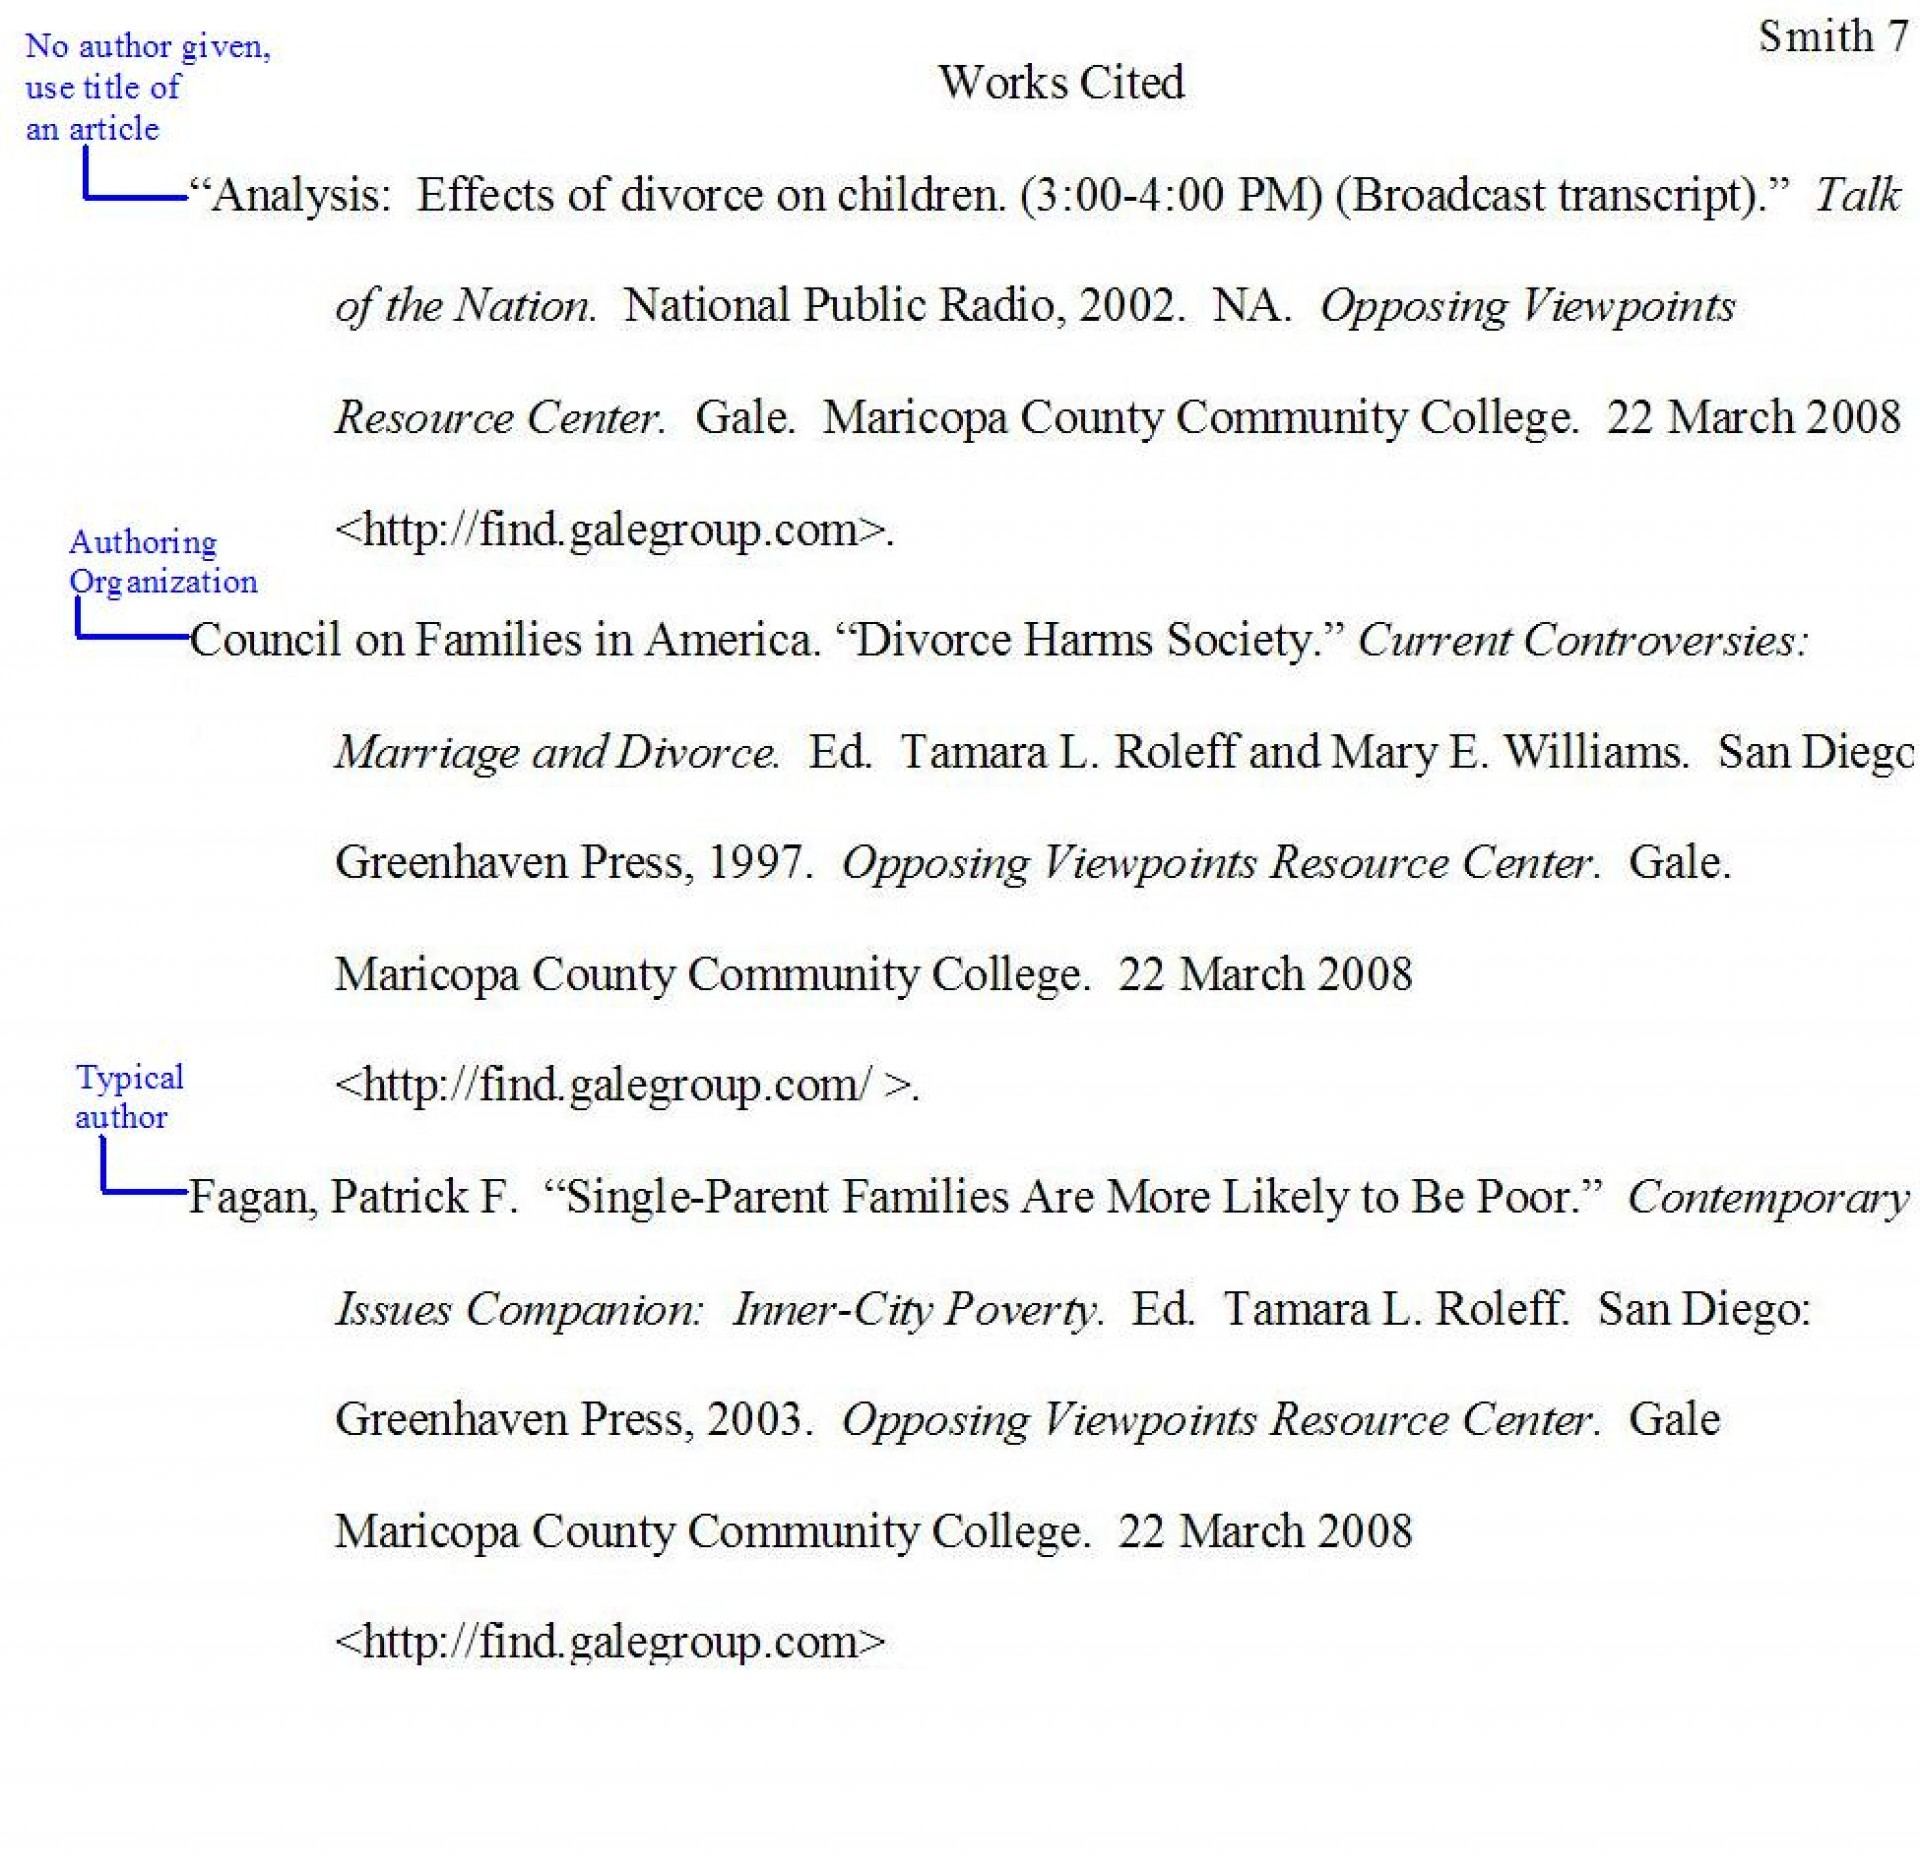 010 How To Cite Research Paper In Mla Format Example Samplewrkctd Imposing A 1920